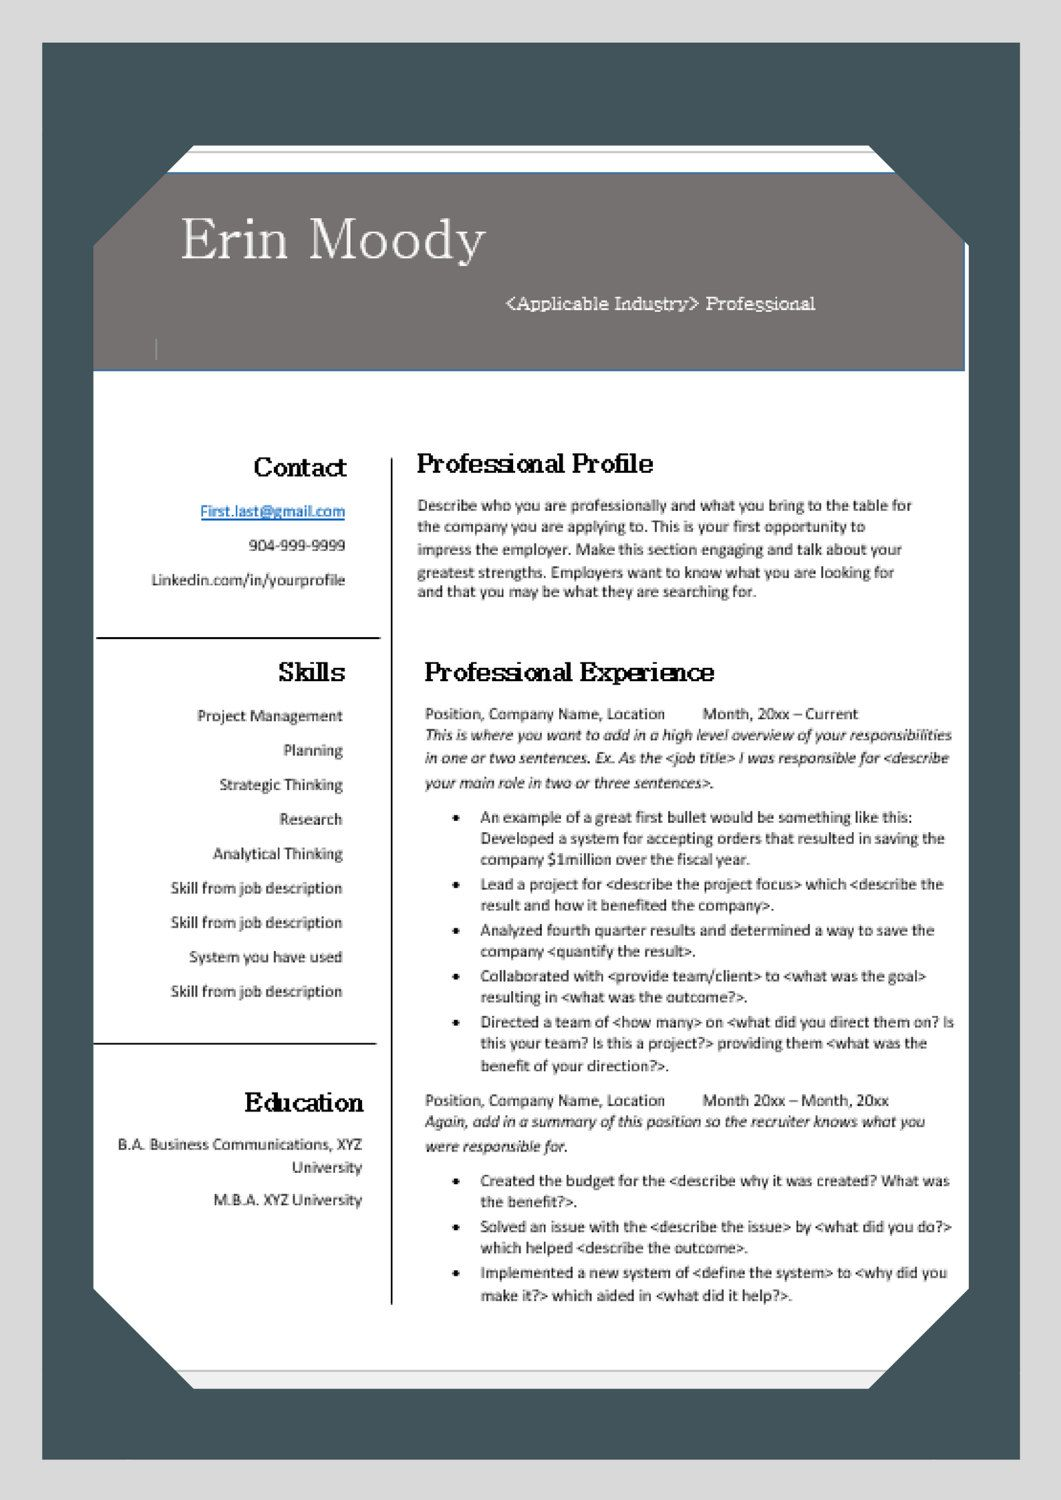 The Perfect Resume Cornerstone for Your Job Search by